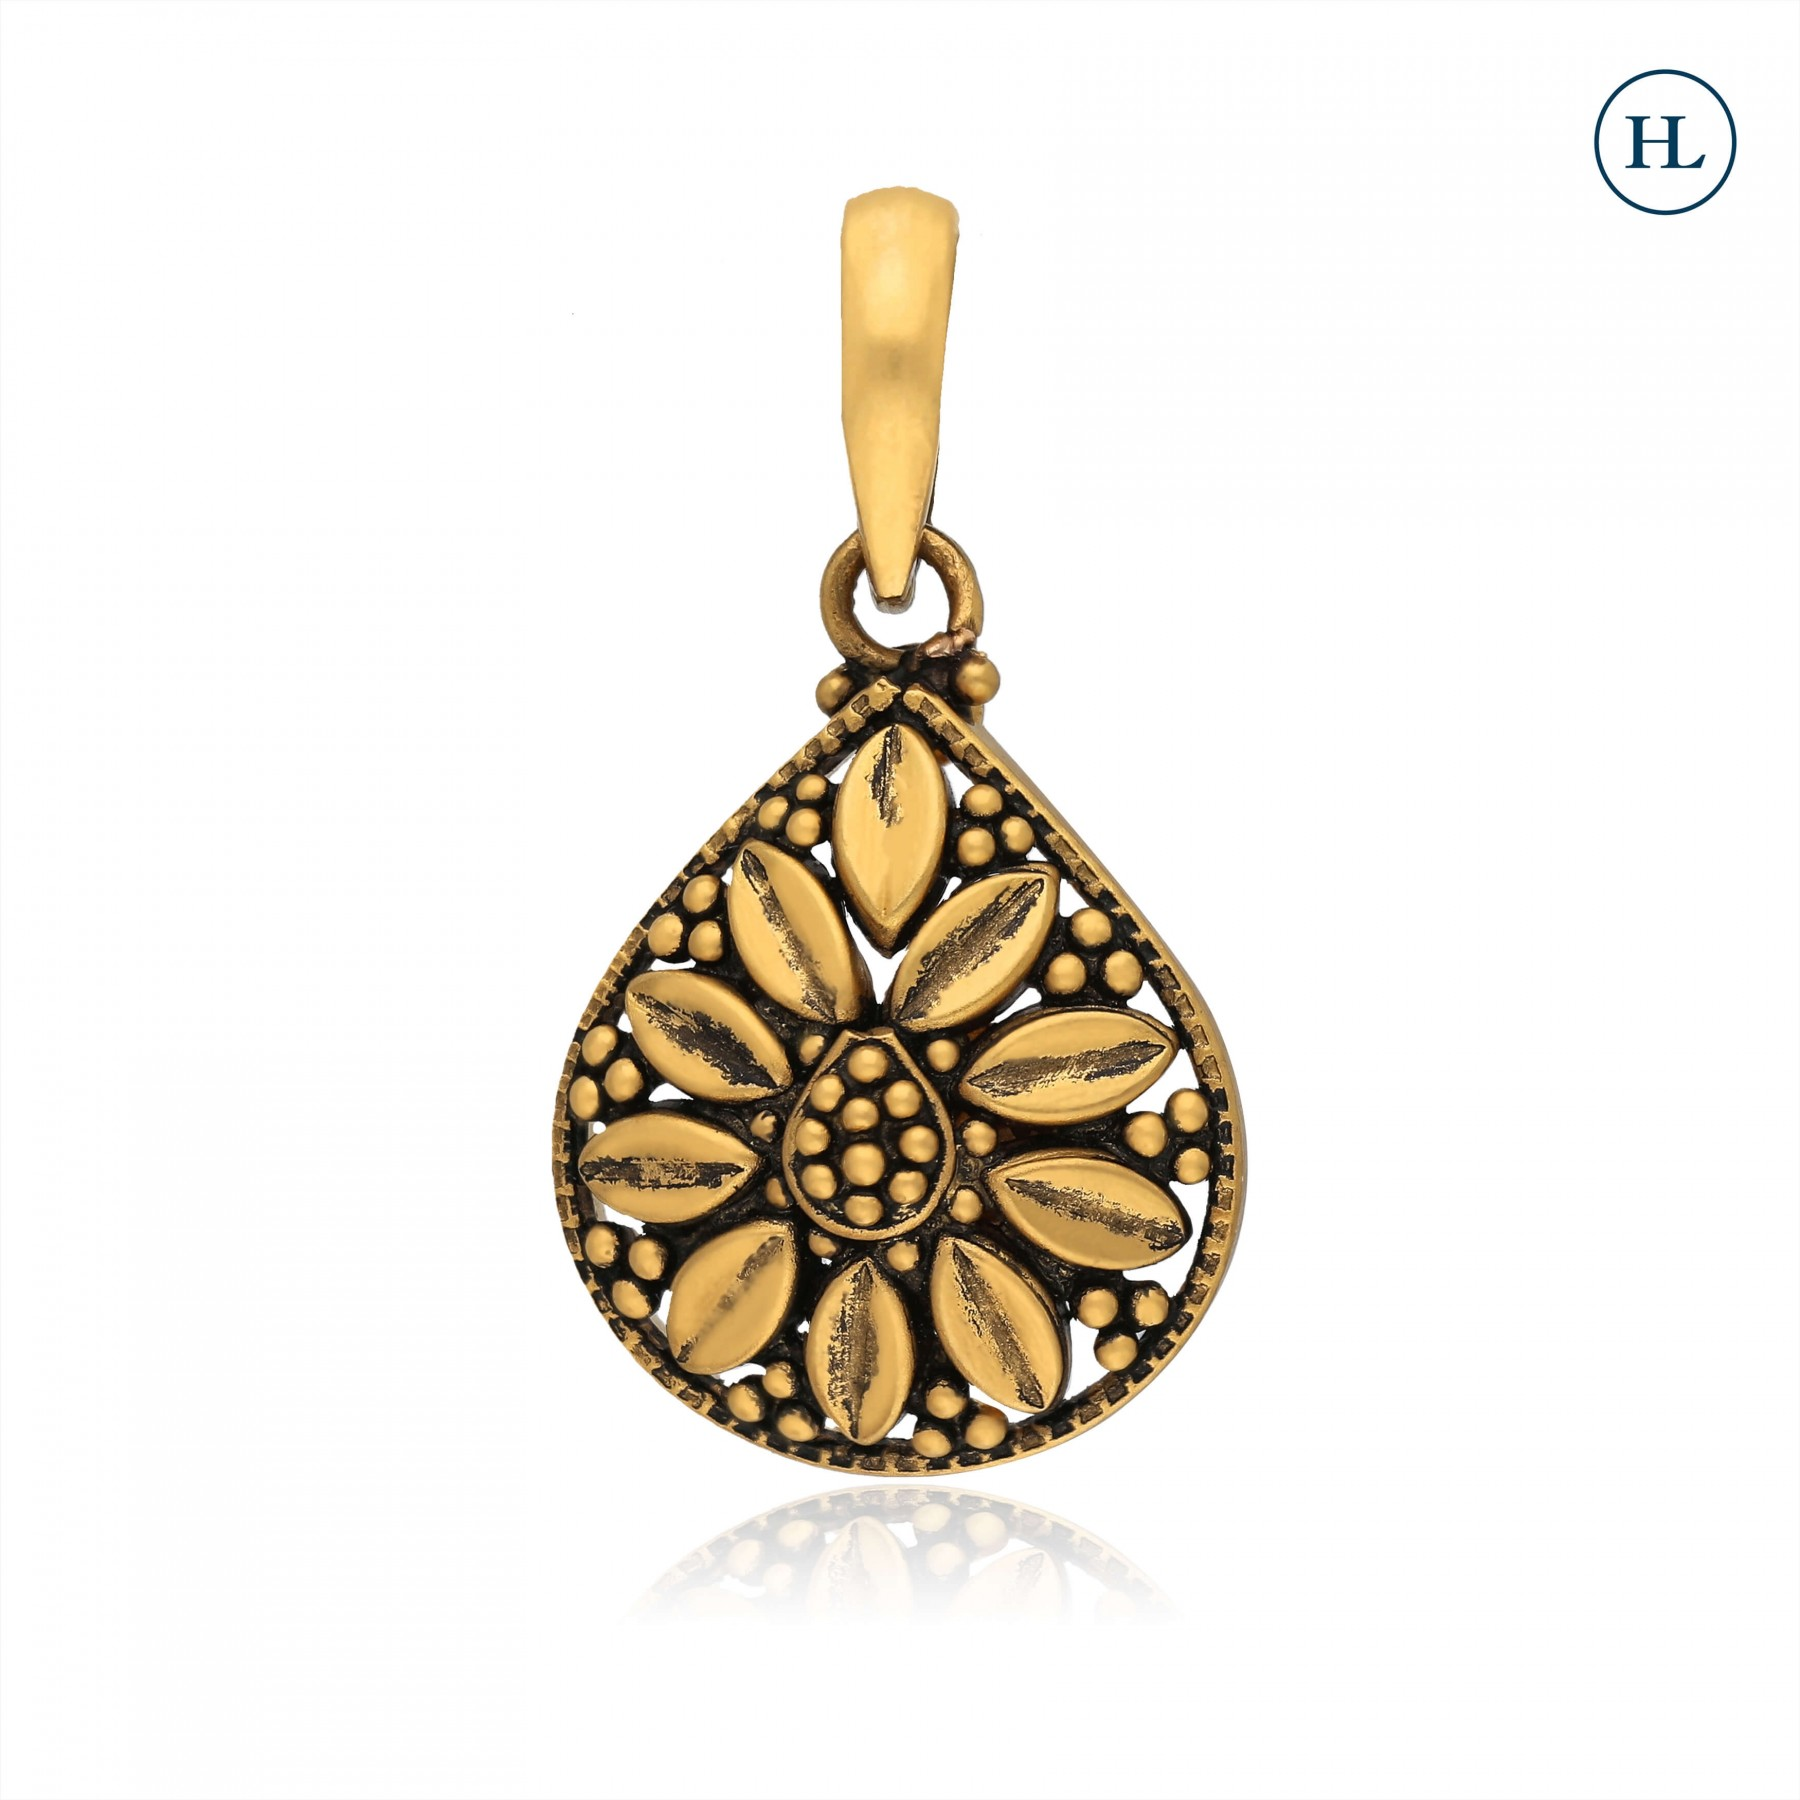 Antique-Styled Flower Gold Pendant